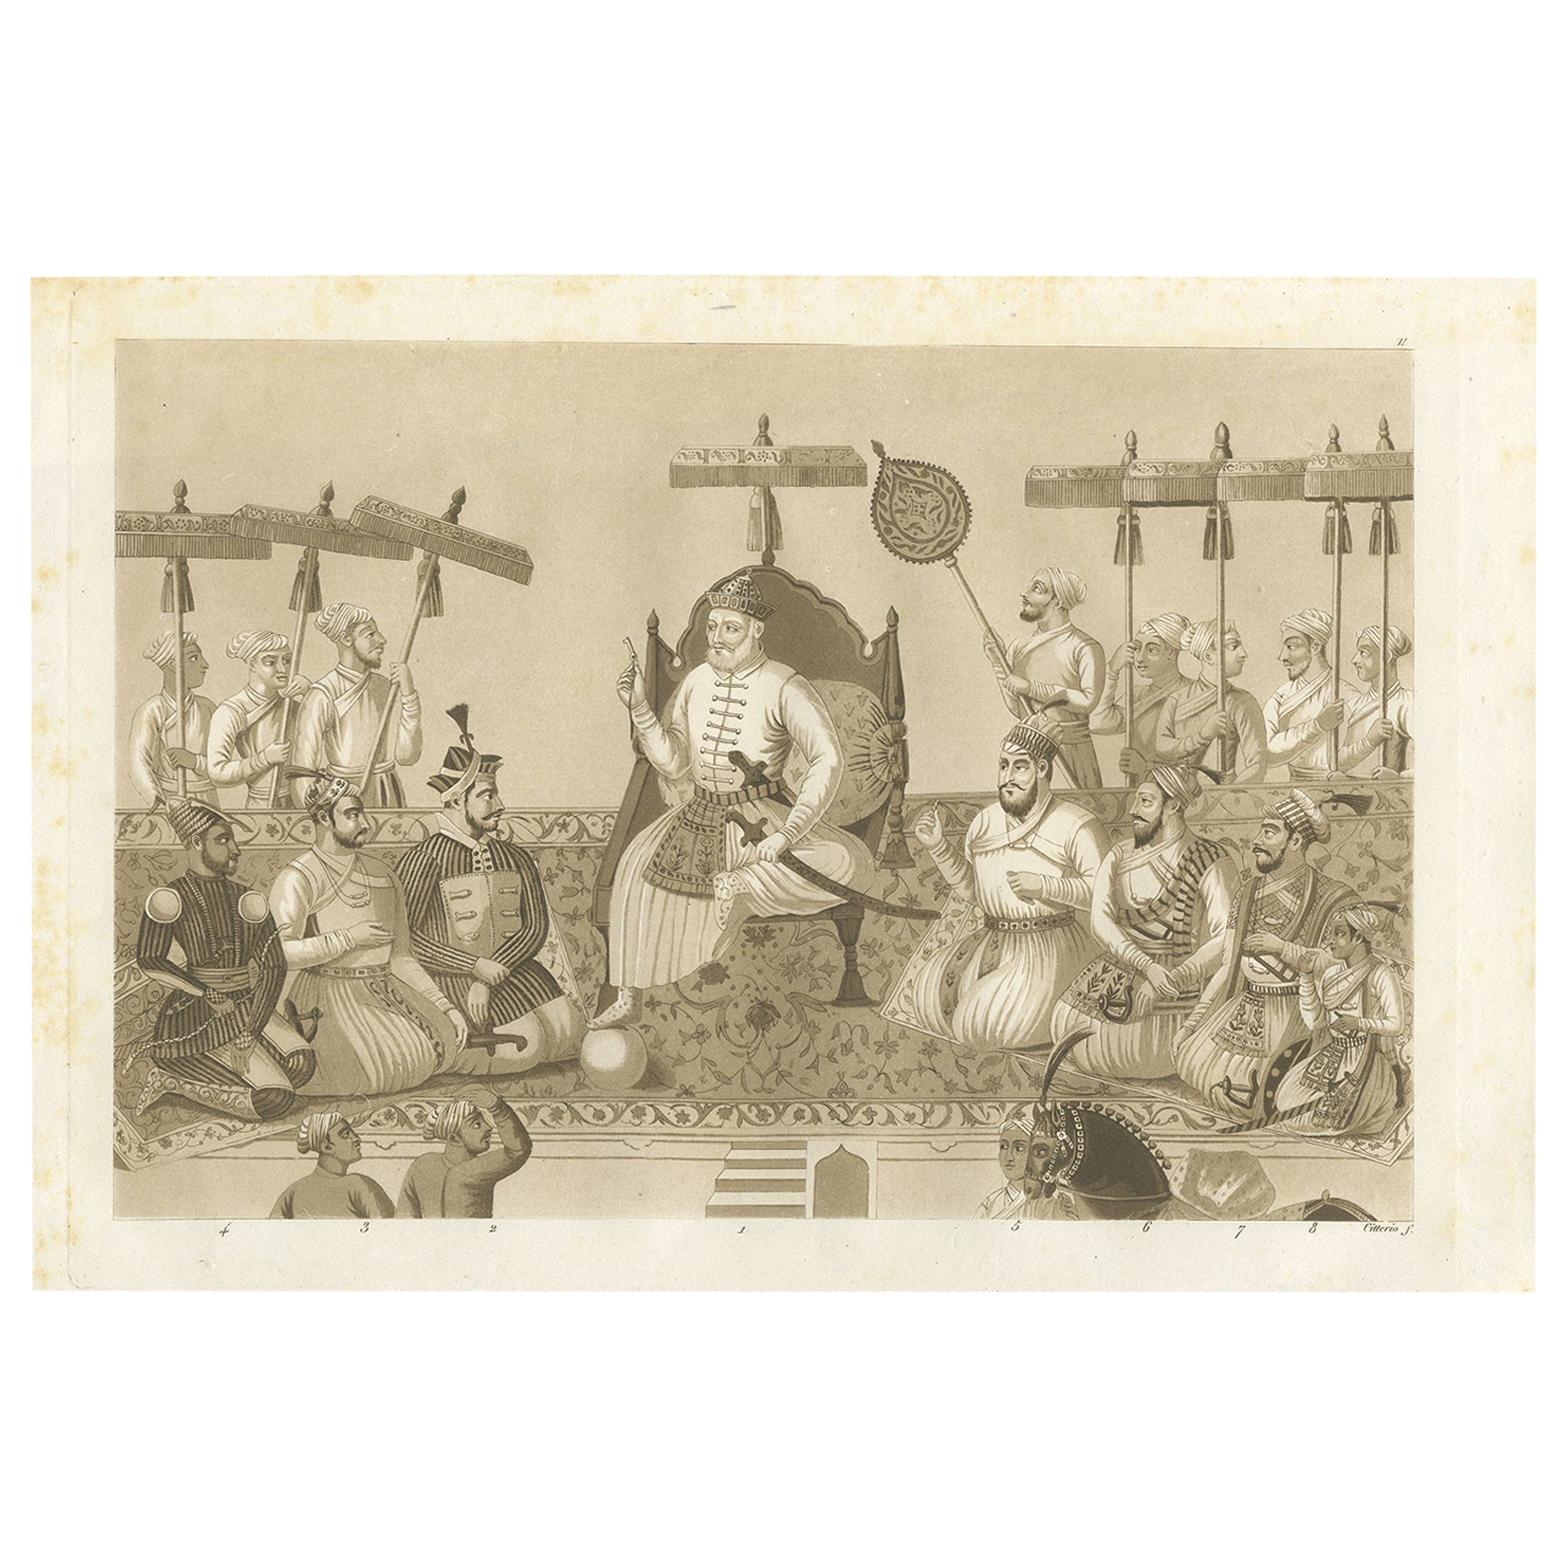 Antique Print of Eight Rulers of the House of Bijapur by Ferrario, '1831'